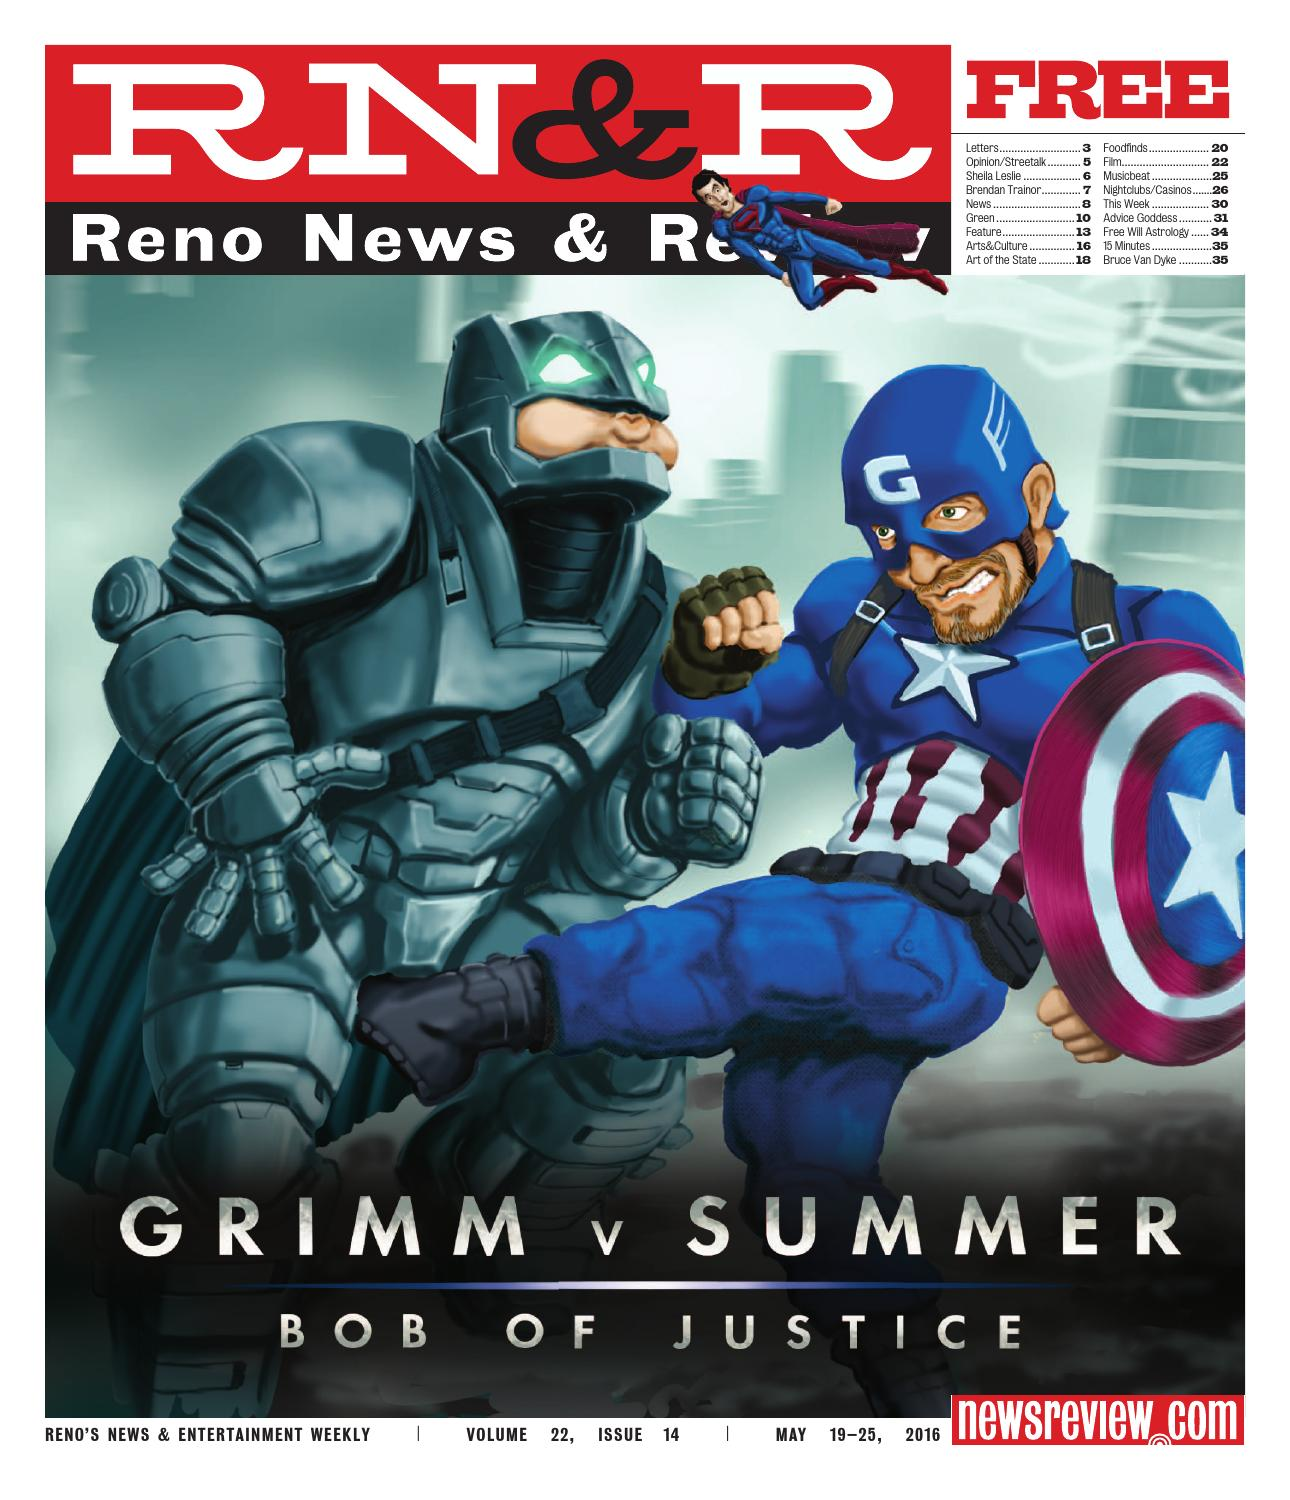 r-2016-05-19 by News & Review - issuu